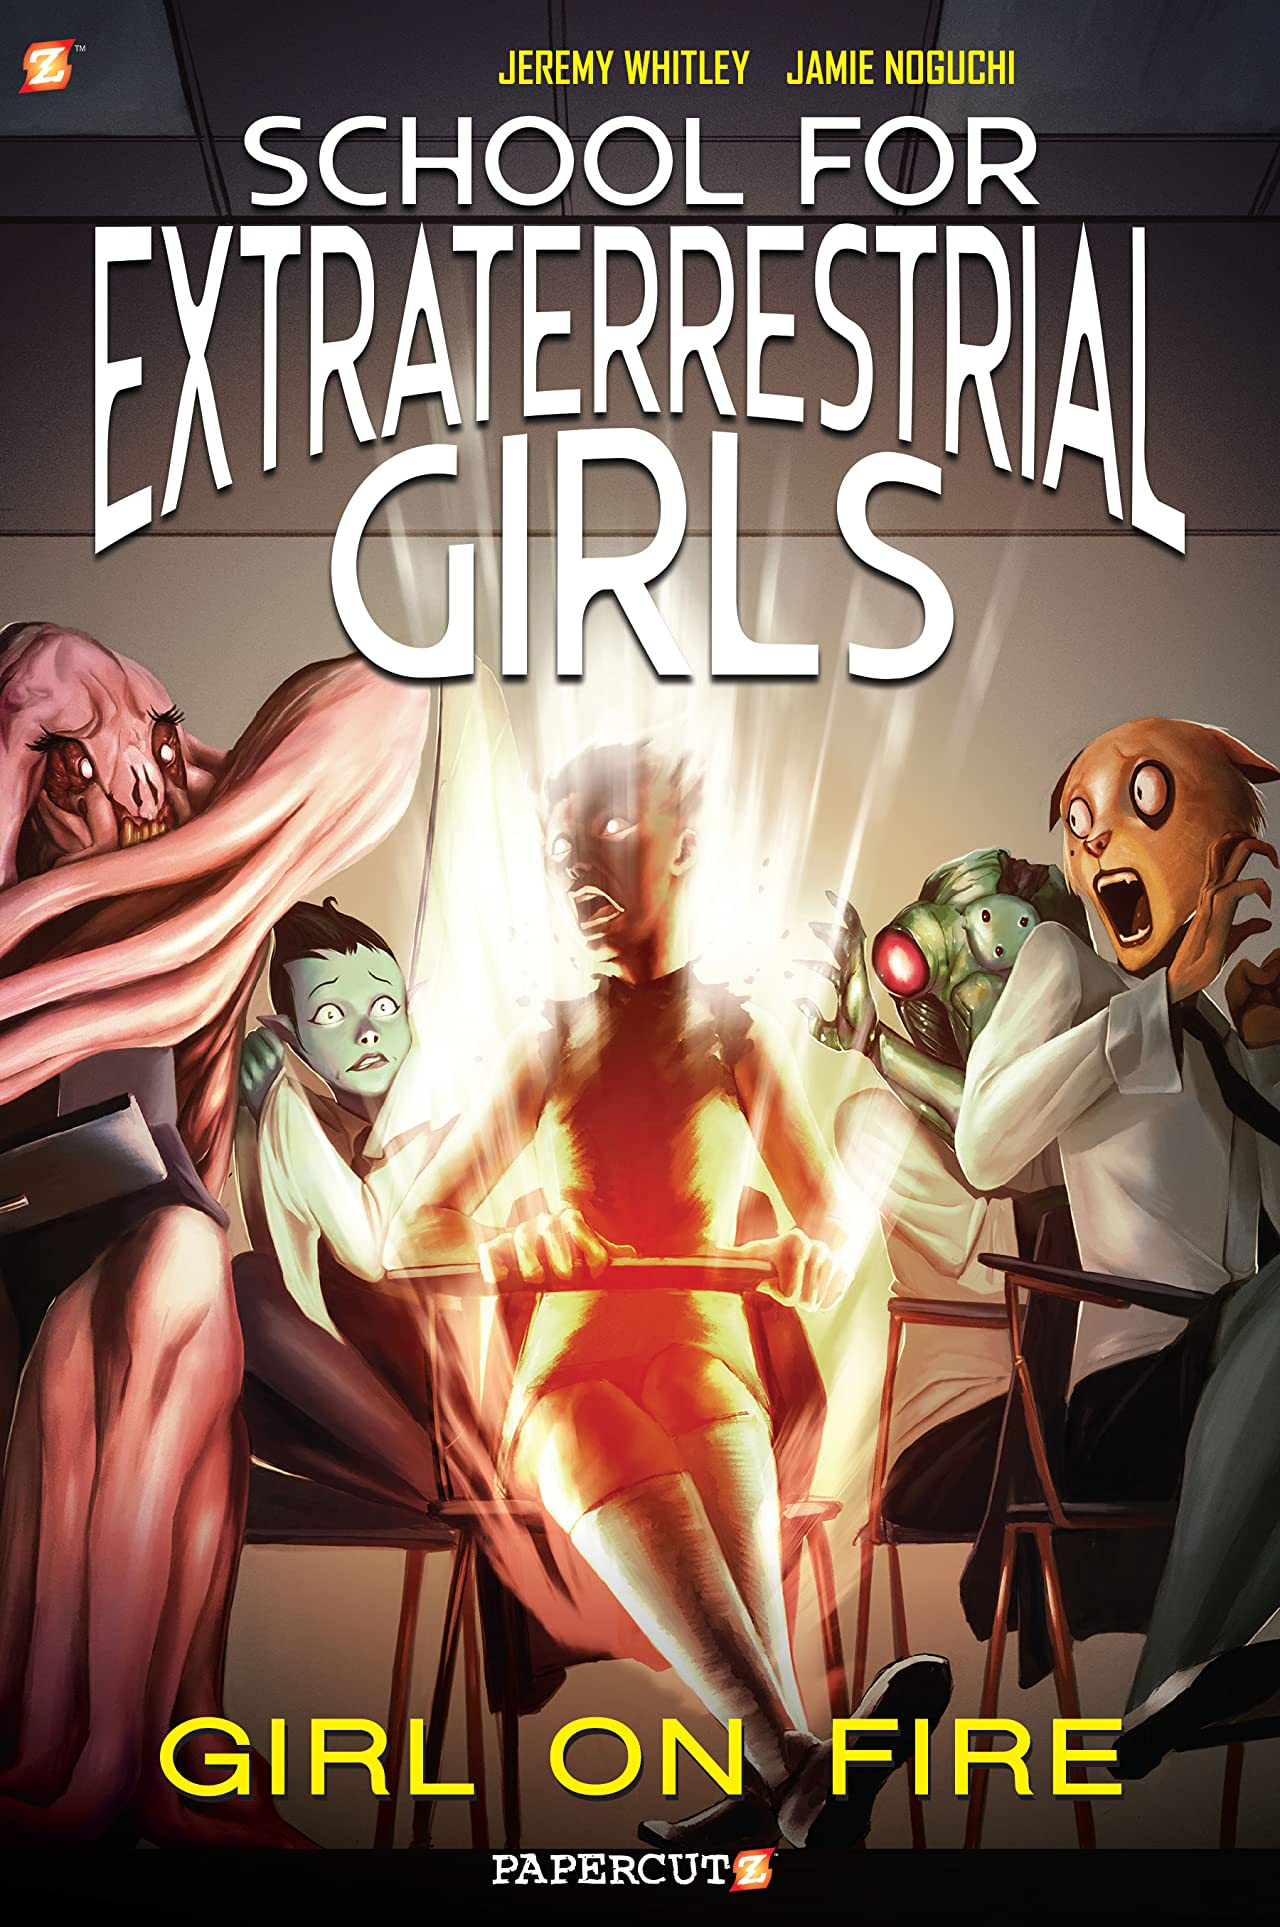 School for Extraterrestrial Girls Vol. 1: Girl on Fire